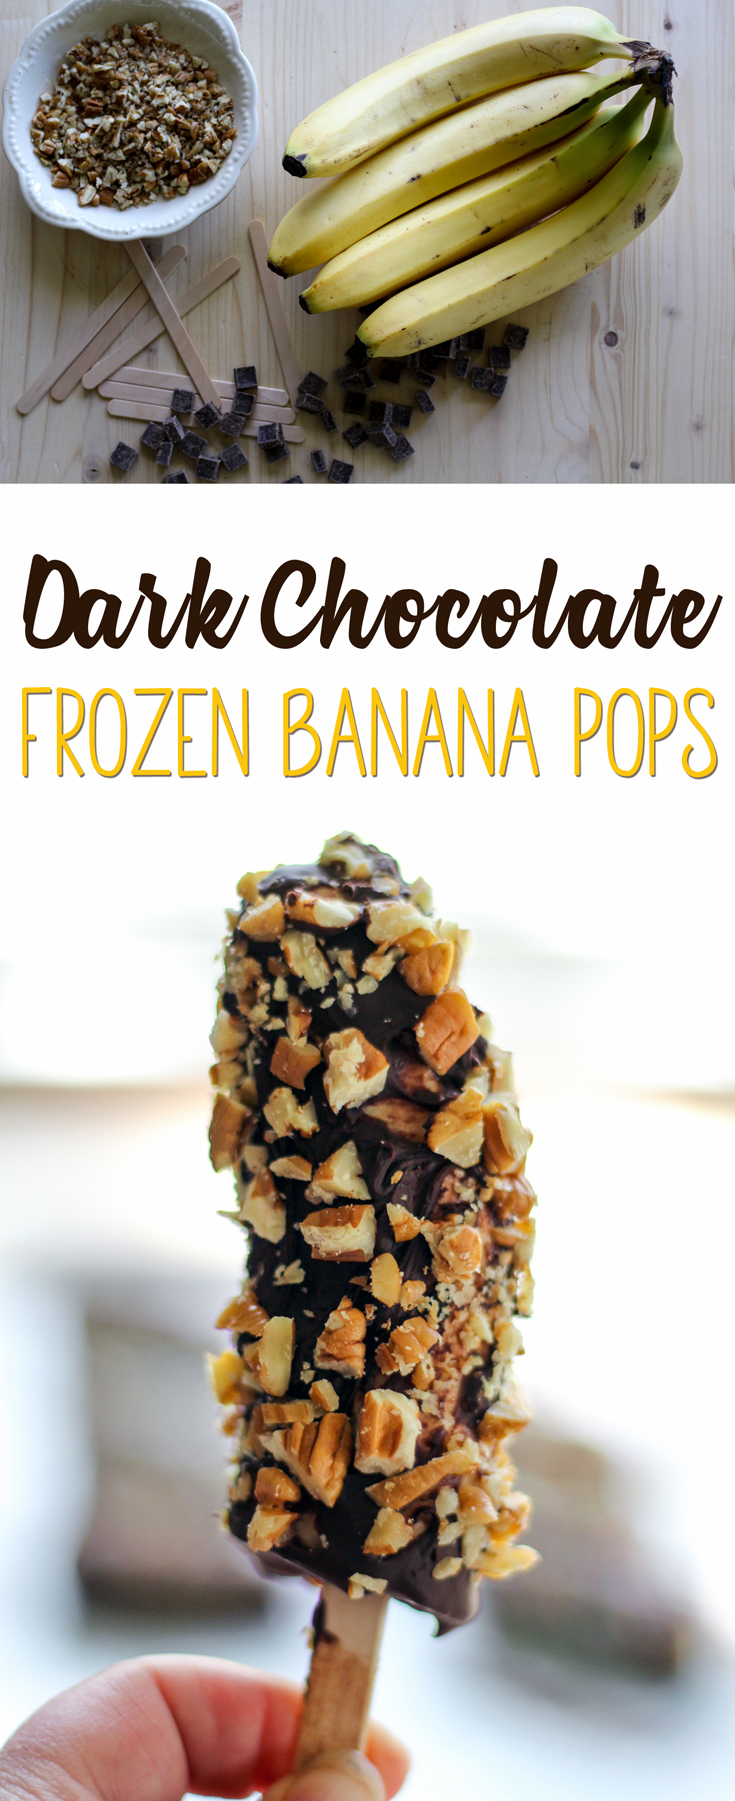 Healthy dessert alert: Ever had a frozen banana? They are creamy, sweet, and so much healthier than a normal ice cream bar. We dipped ours in dark chocolate and chopped pecans.  #frozenbananapops